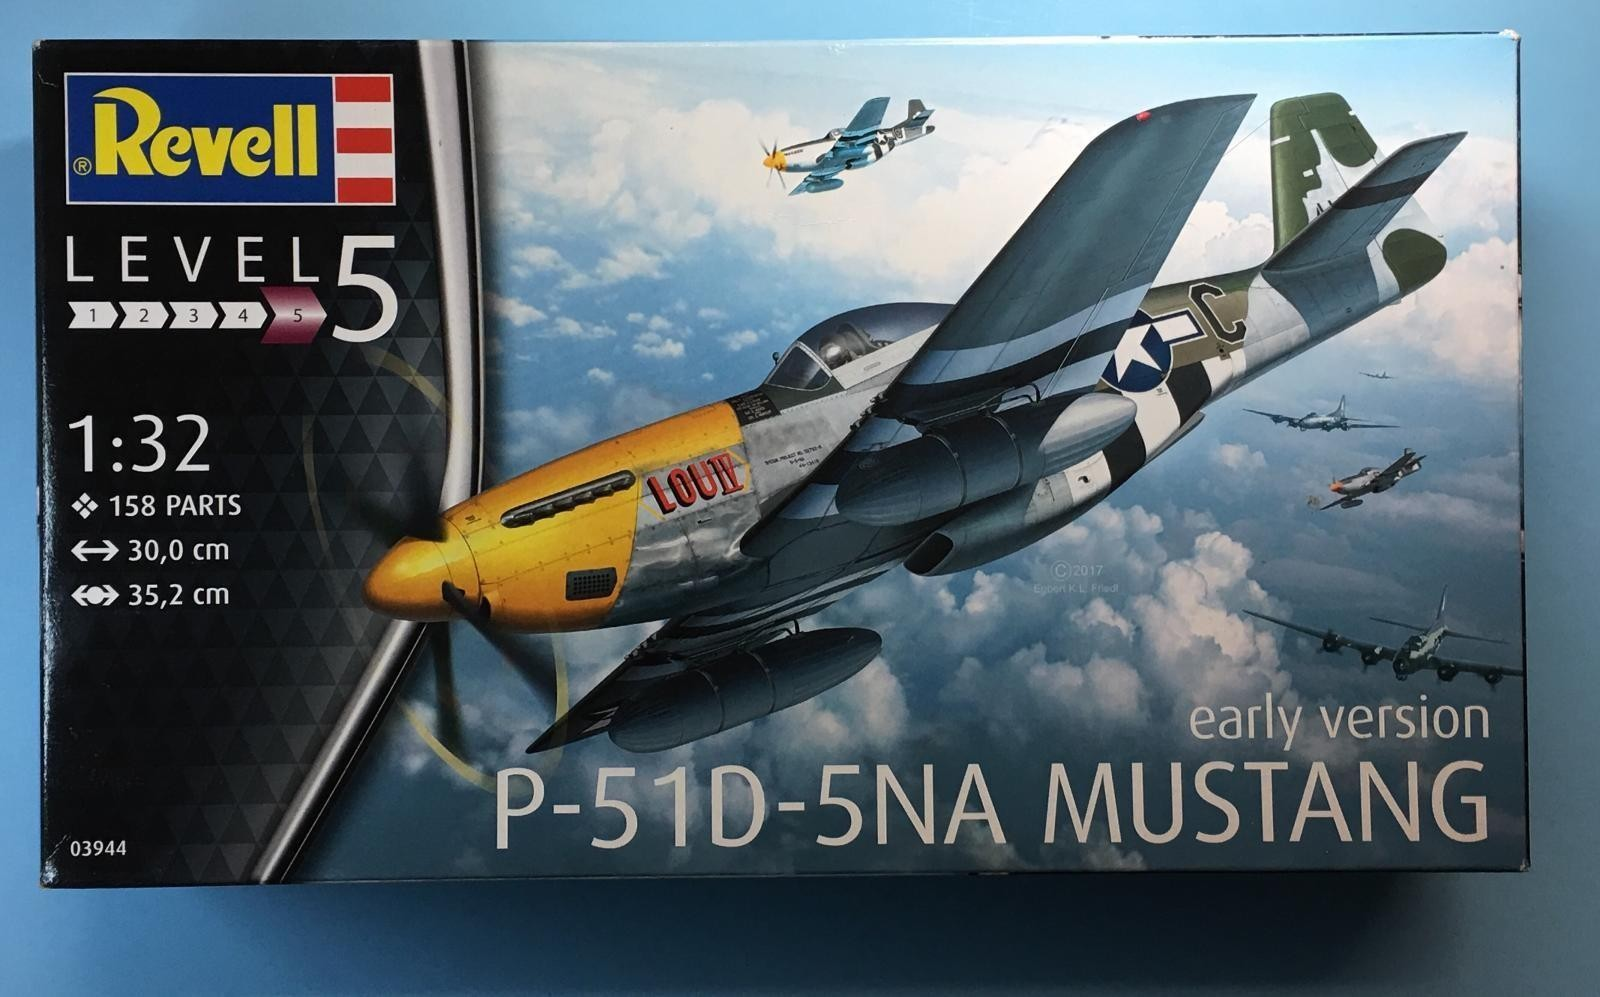 Kit Review: 1/32 scale P-51D-5NA Mustang, Revell of Germany